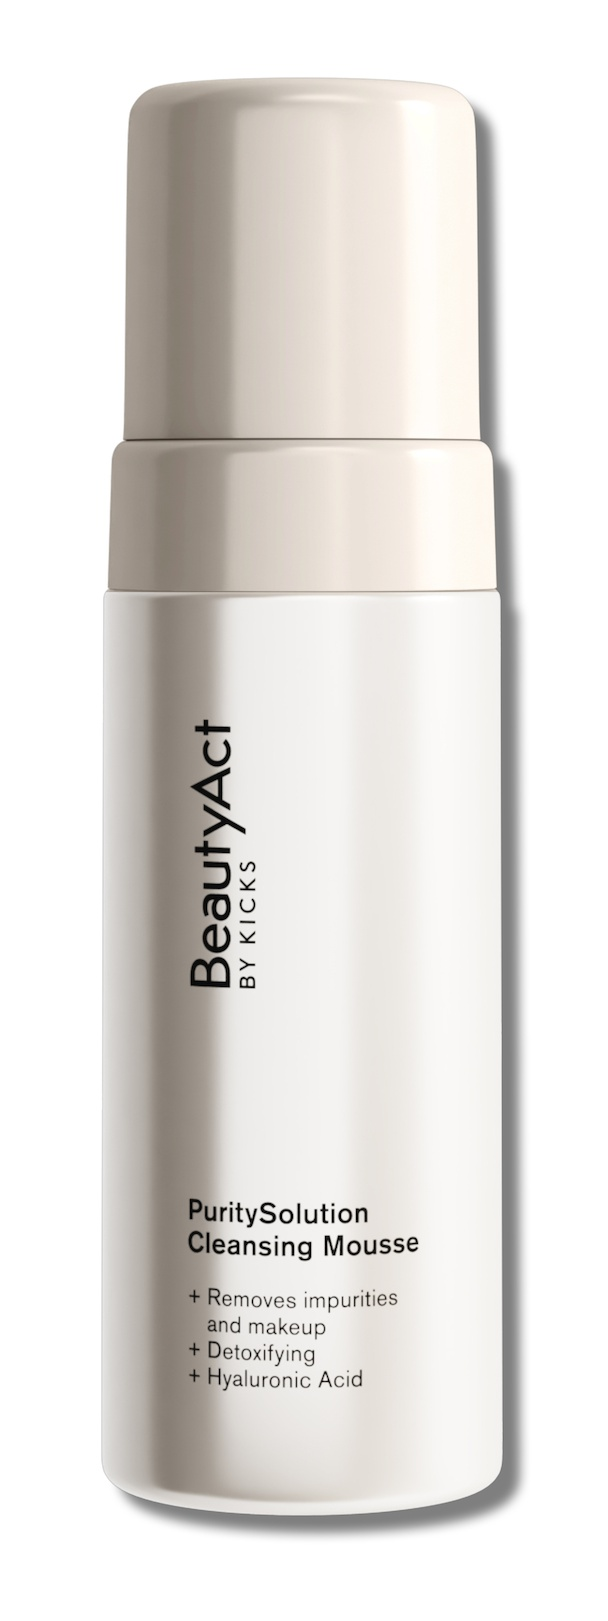 BeautyAct Puritysolution Cleansing Mousse